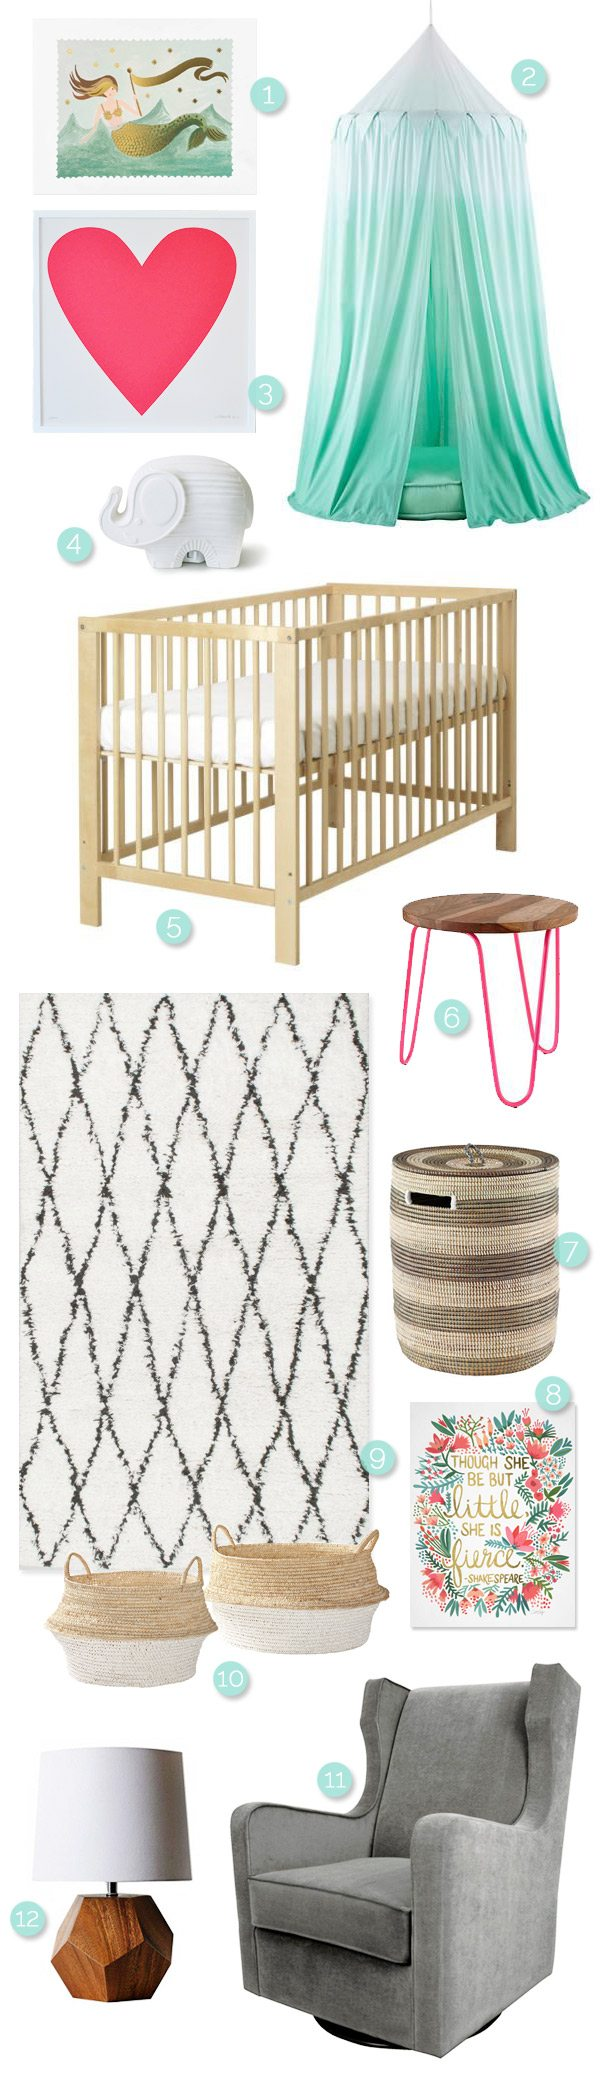 Modern Girls Nursery Ideas from @cydconverse